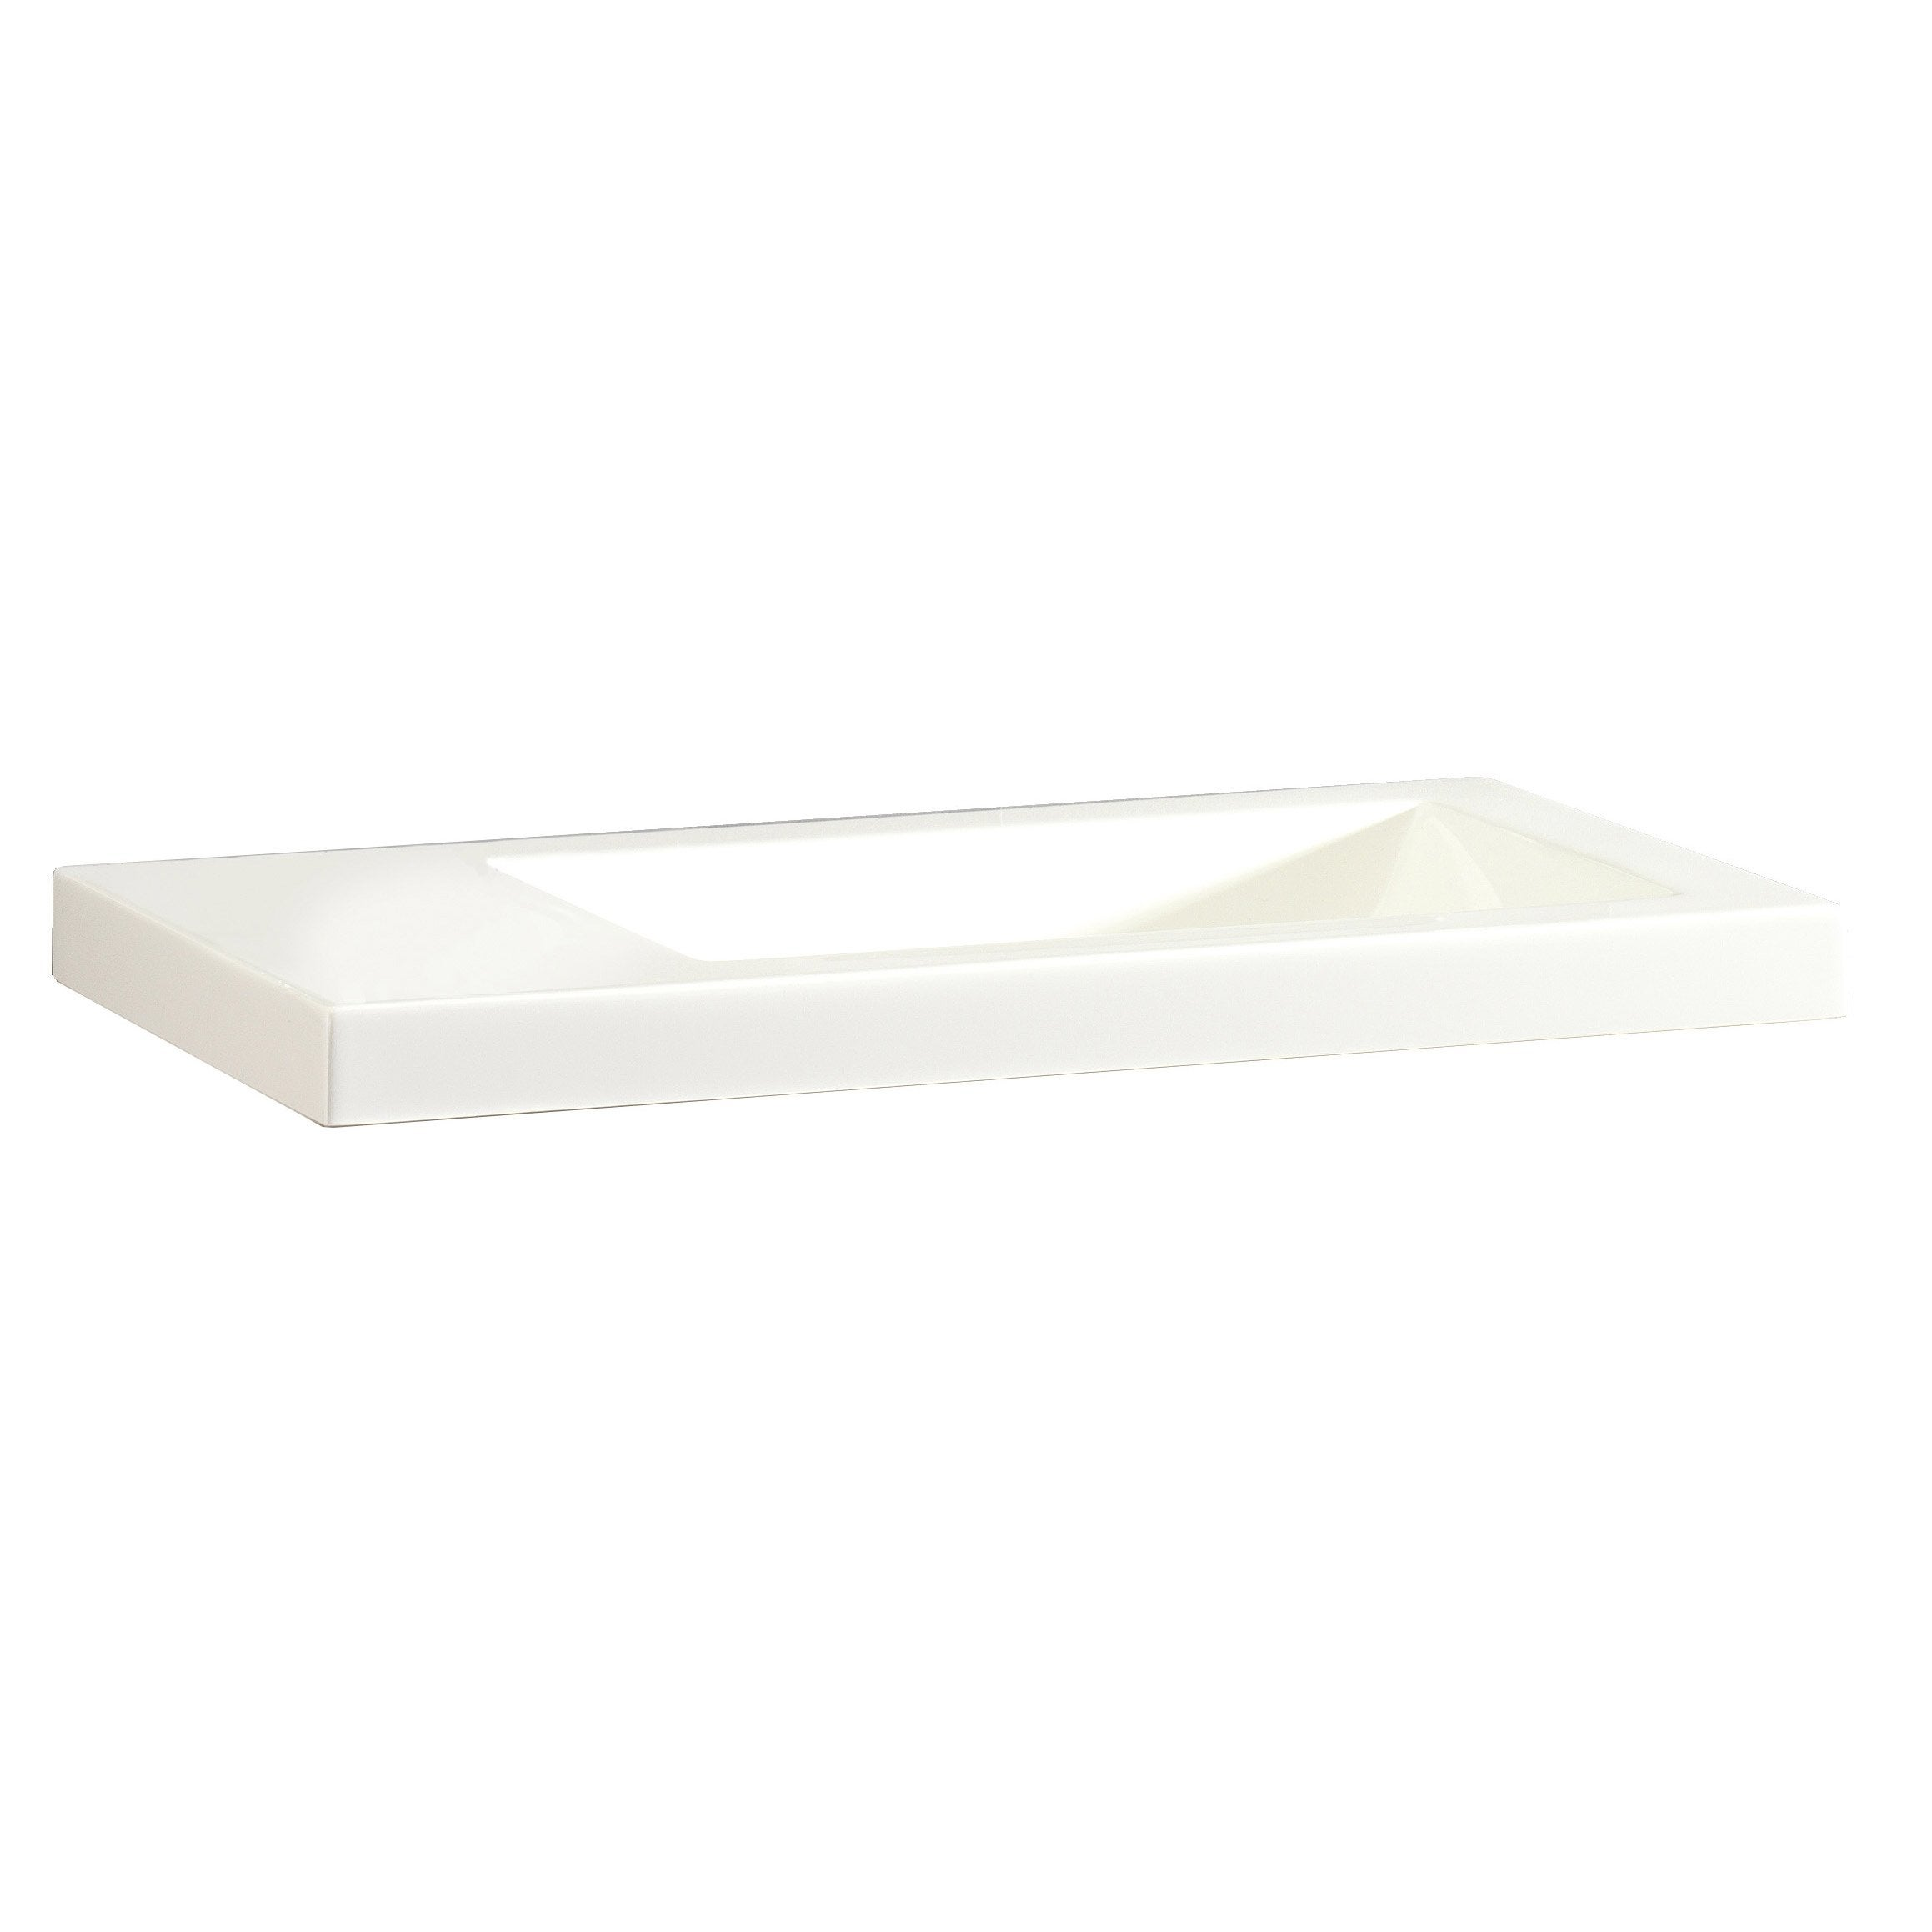 Lave-mains résine rectangle blanc l.43 x P.23 cm, Nerea